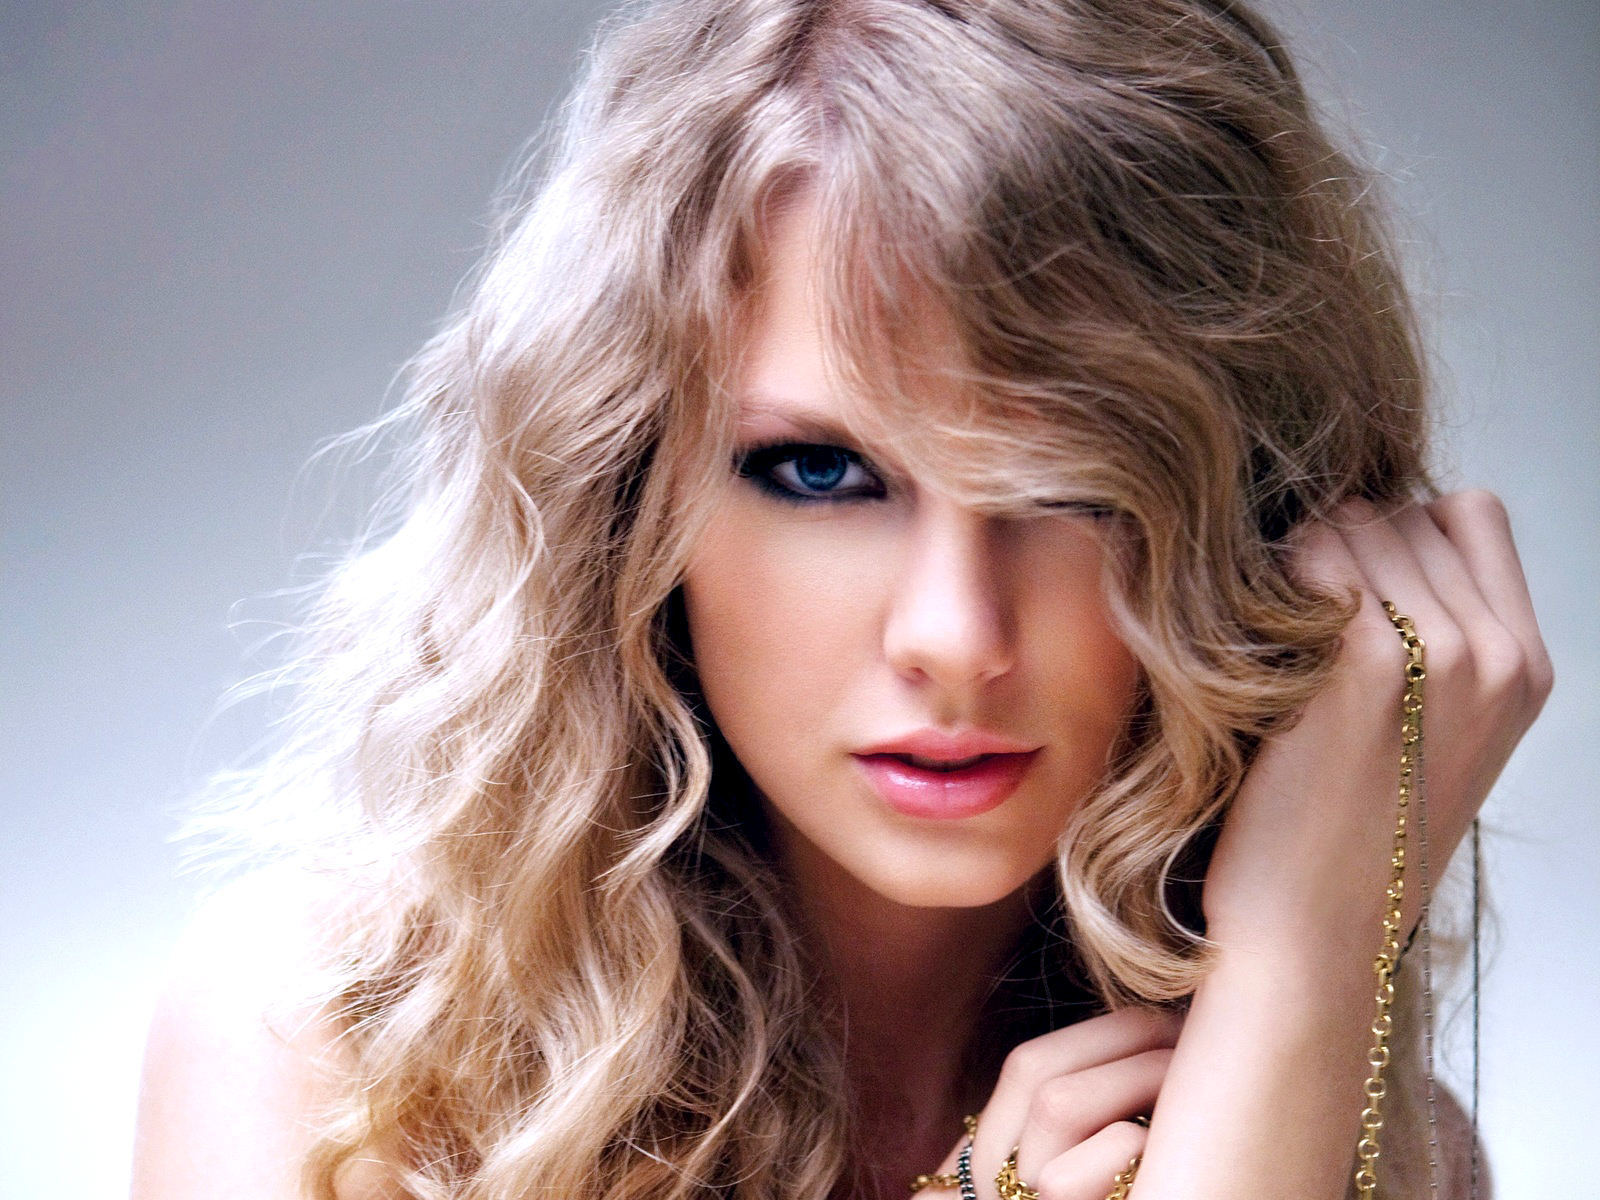 Beautiful Taylor - Taylor Swift Wallpaper (23103616) - Fanpop